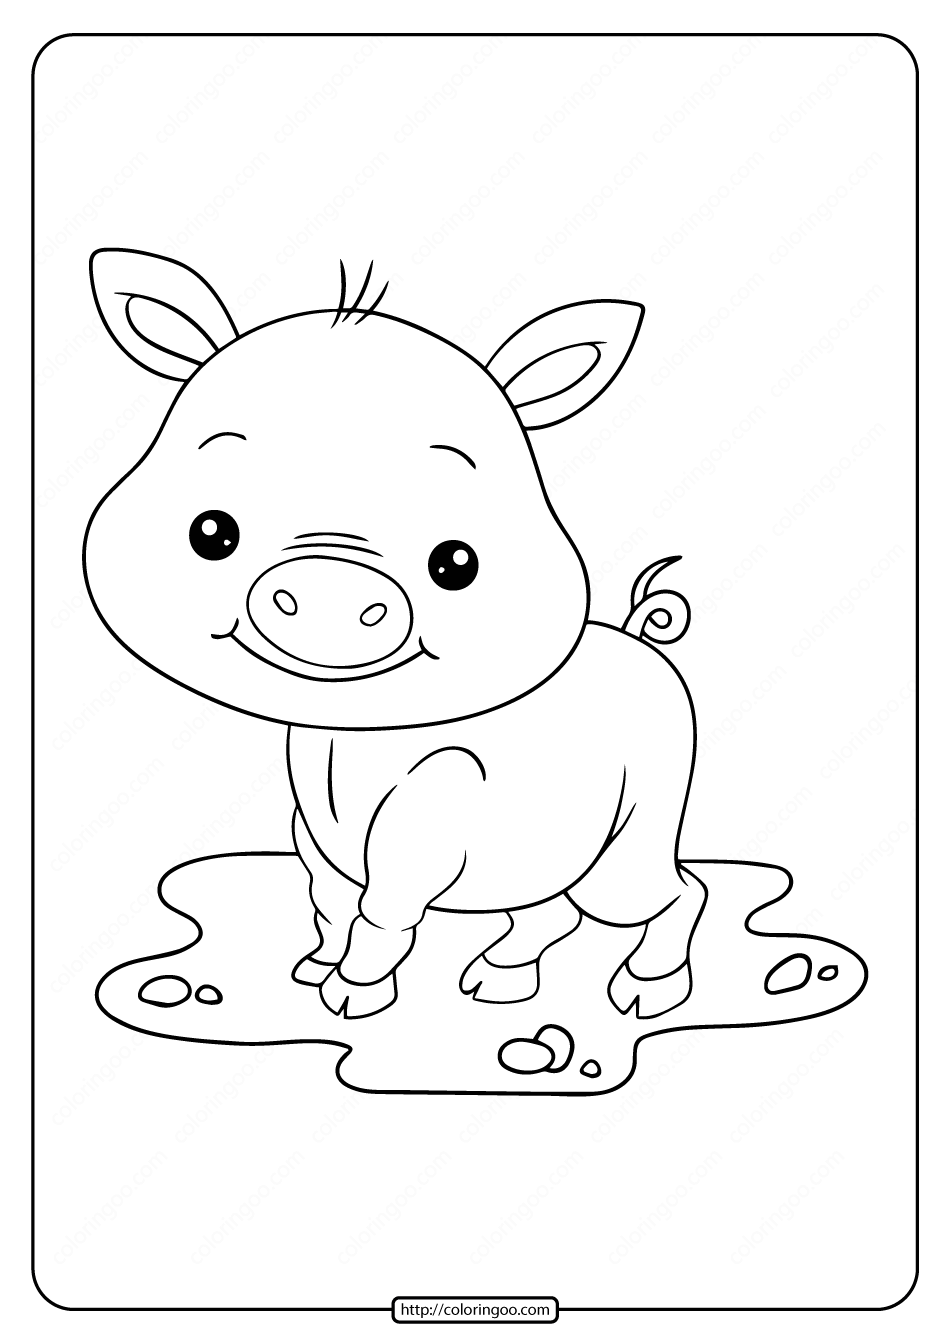 pig to colour pig coloring pages getcoloringpagescom pig to colour